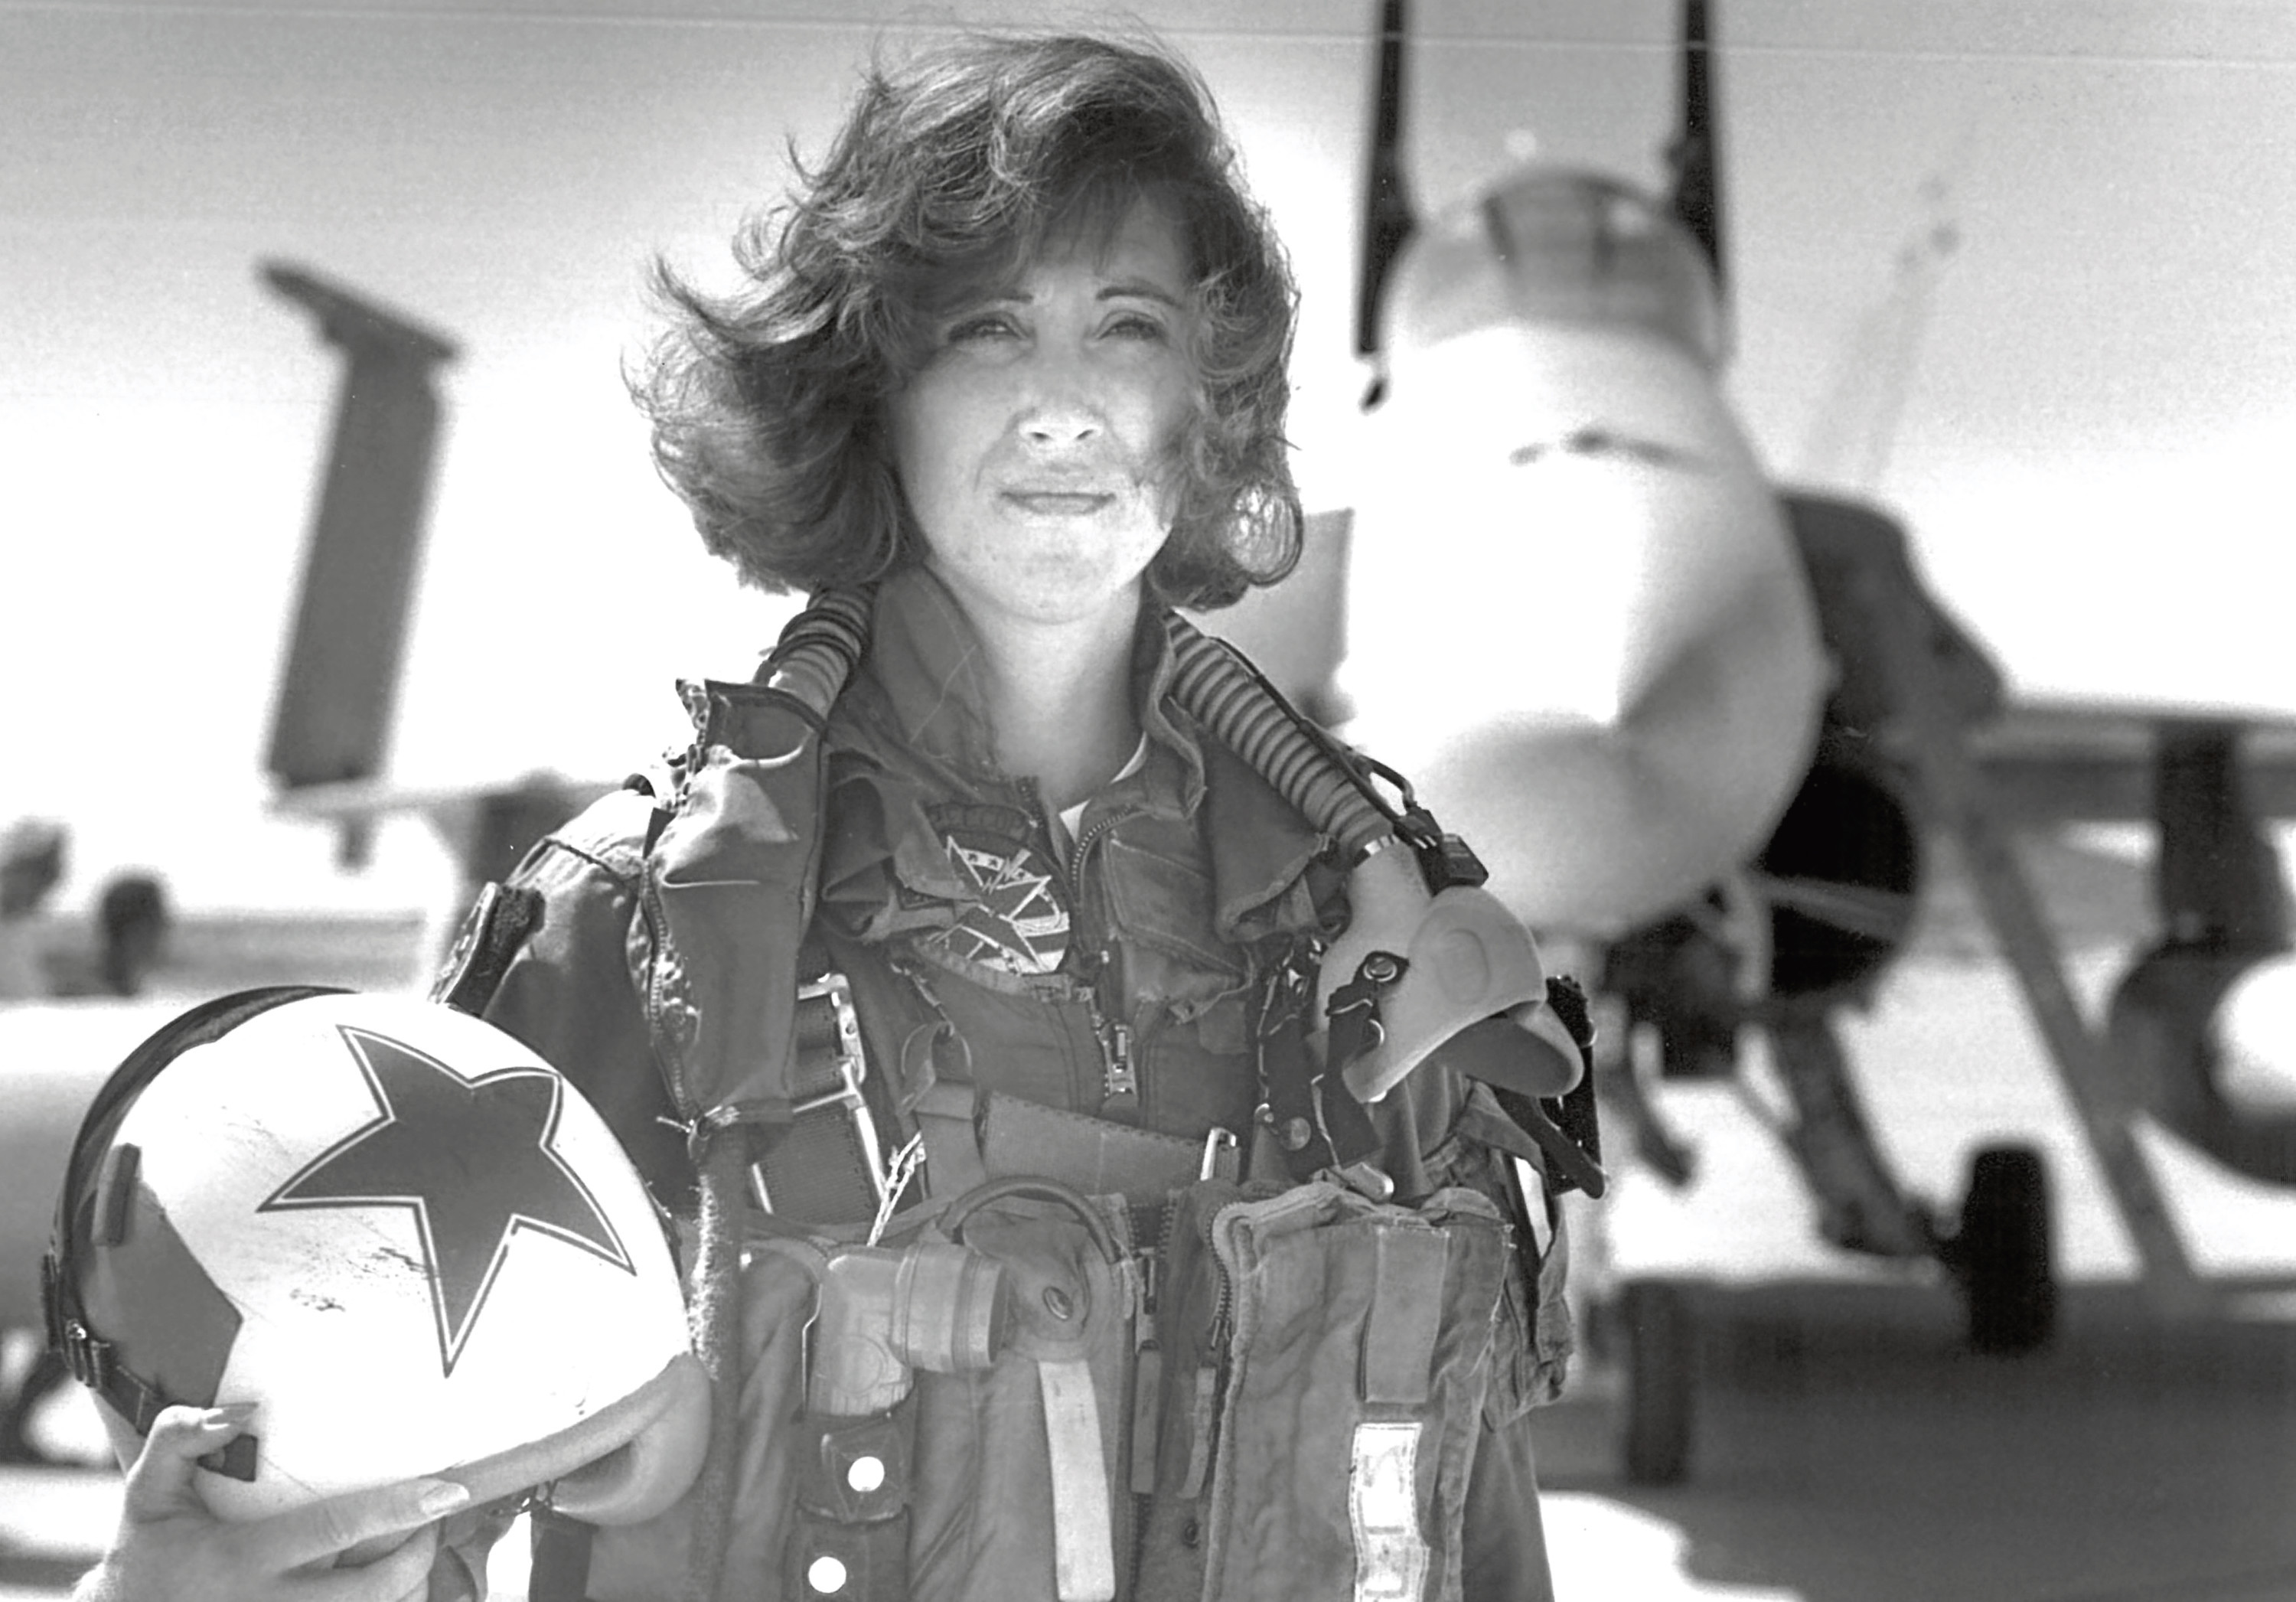 Southwest Airlines Captain Tammie Jo Shults (Thomas P. Milne/U.S. Navy via AP)